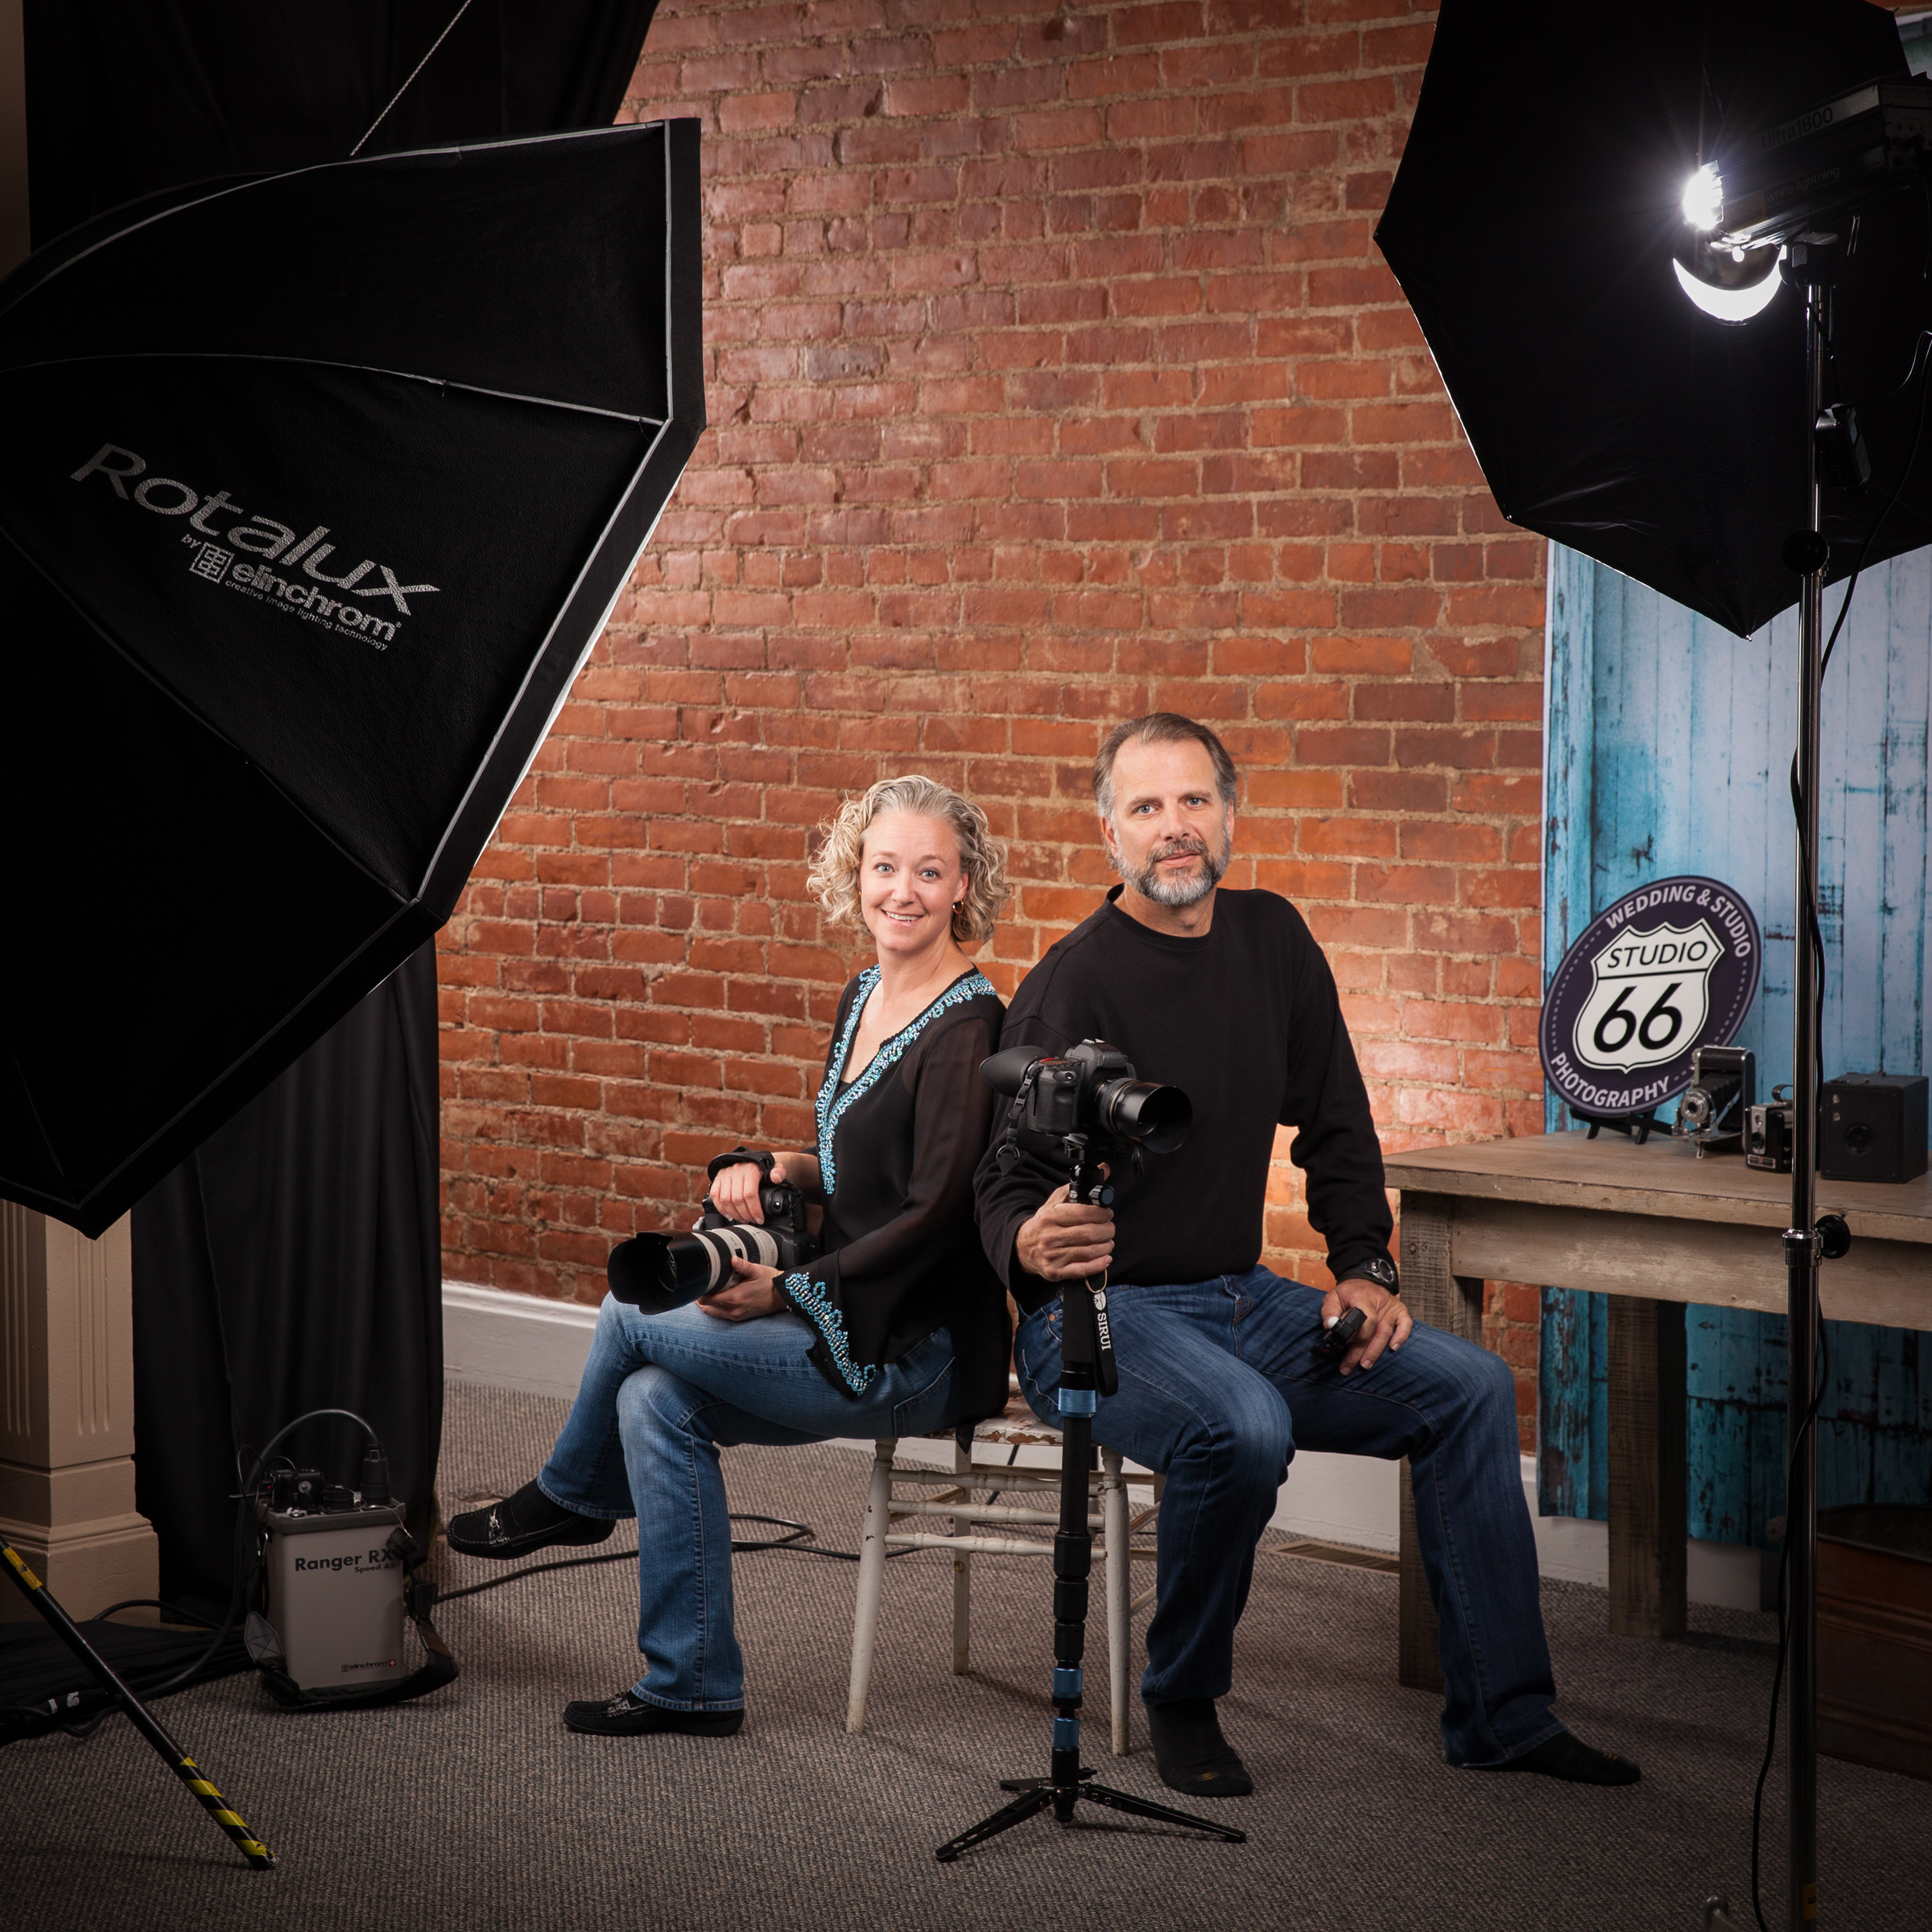 Studio 66 photographers